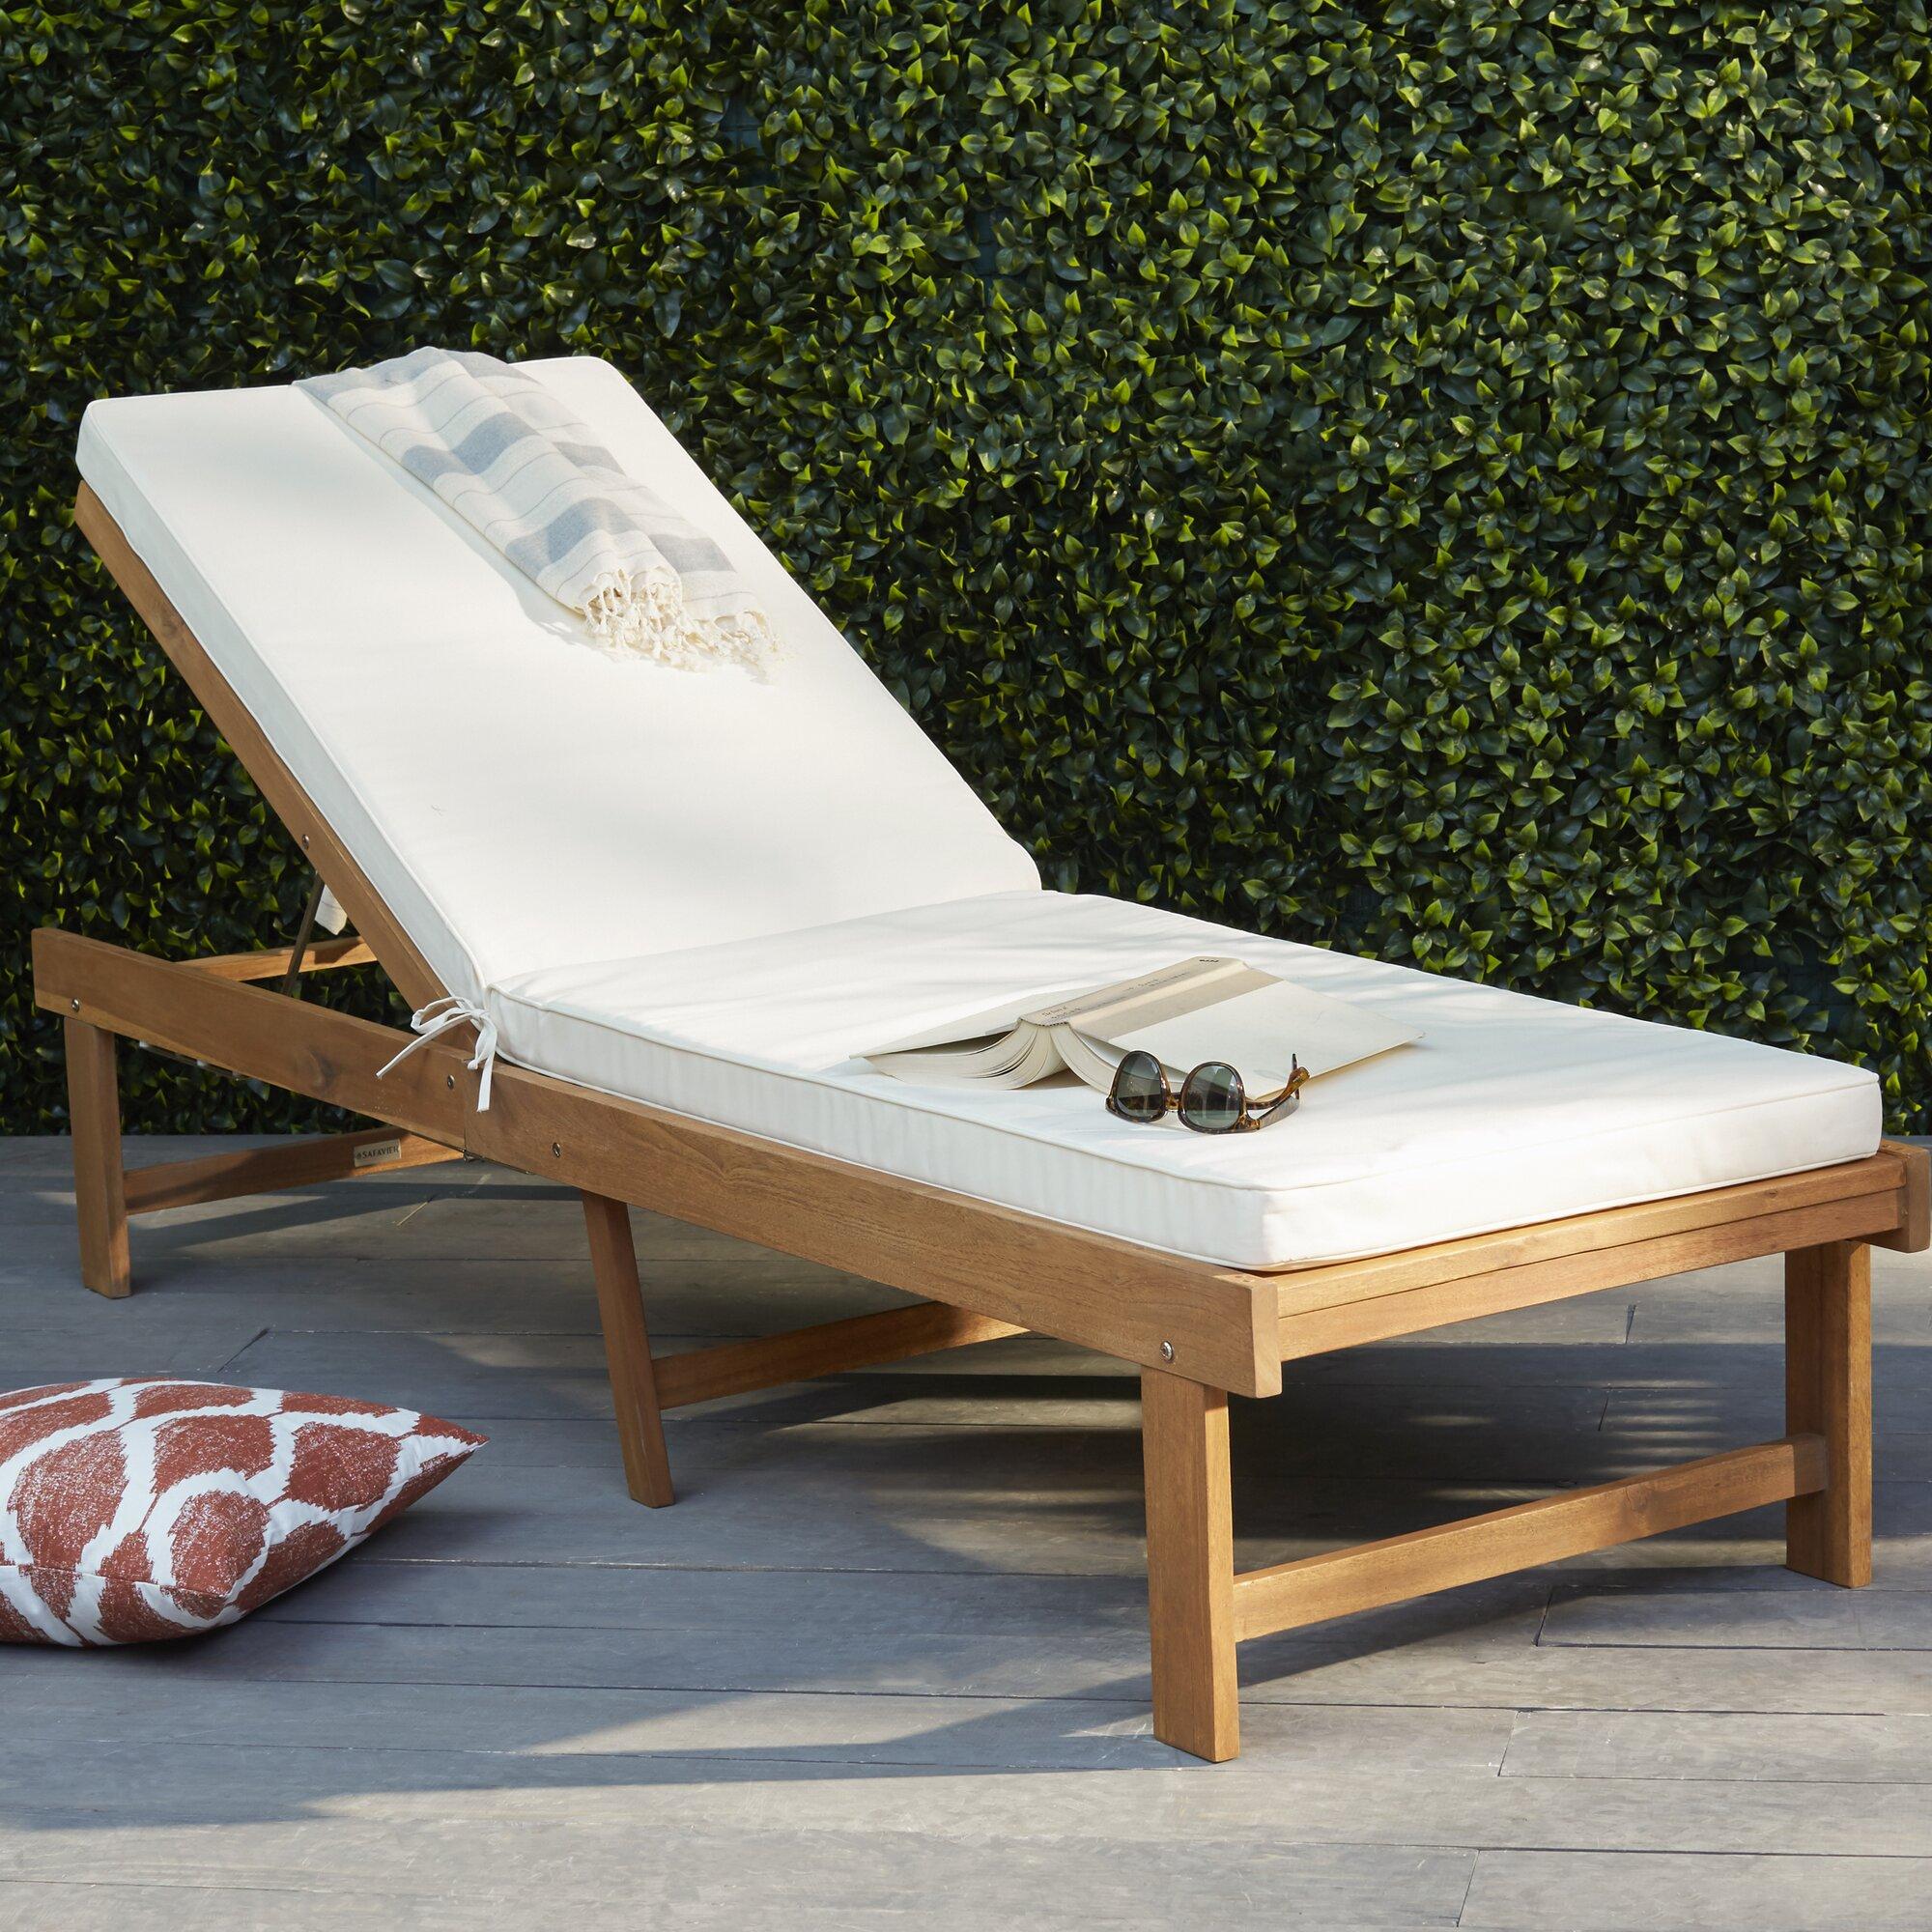 Plastic strap lounge chairs - Matheny Lounge Chair